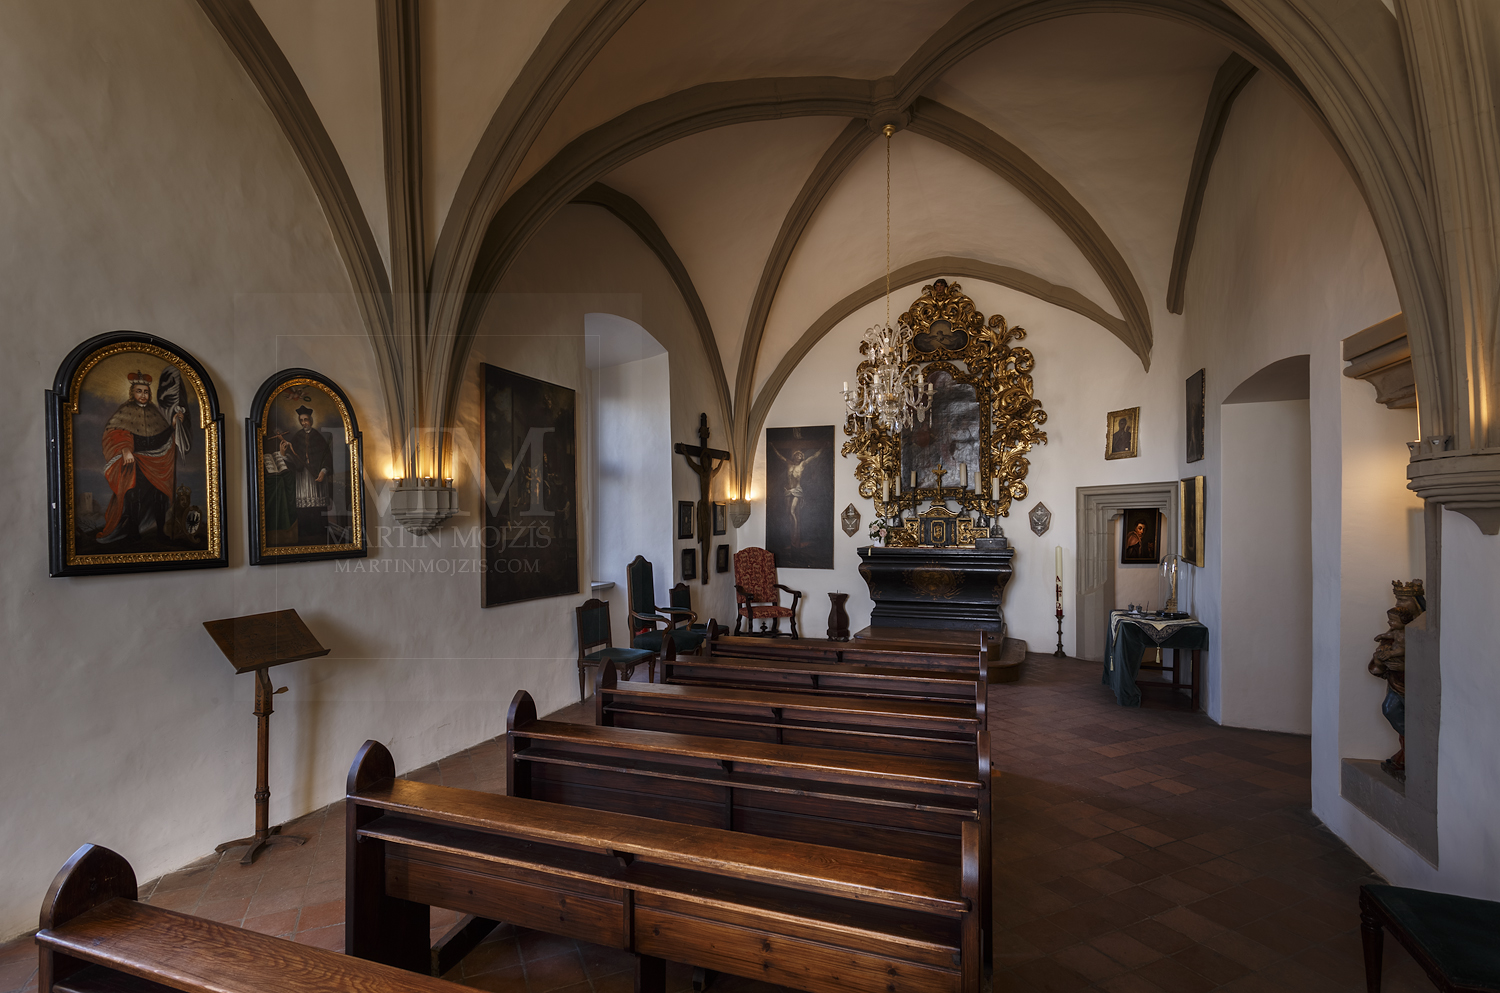 Chateau Melnik – chapel. Professional photography of architecture - interiors.